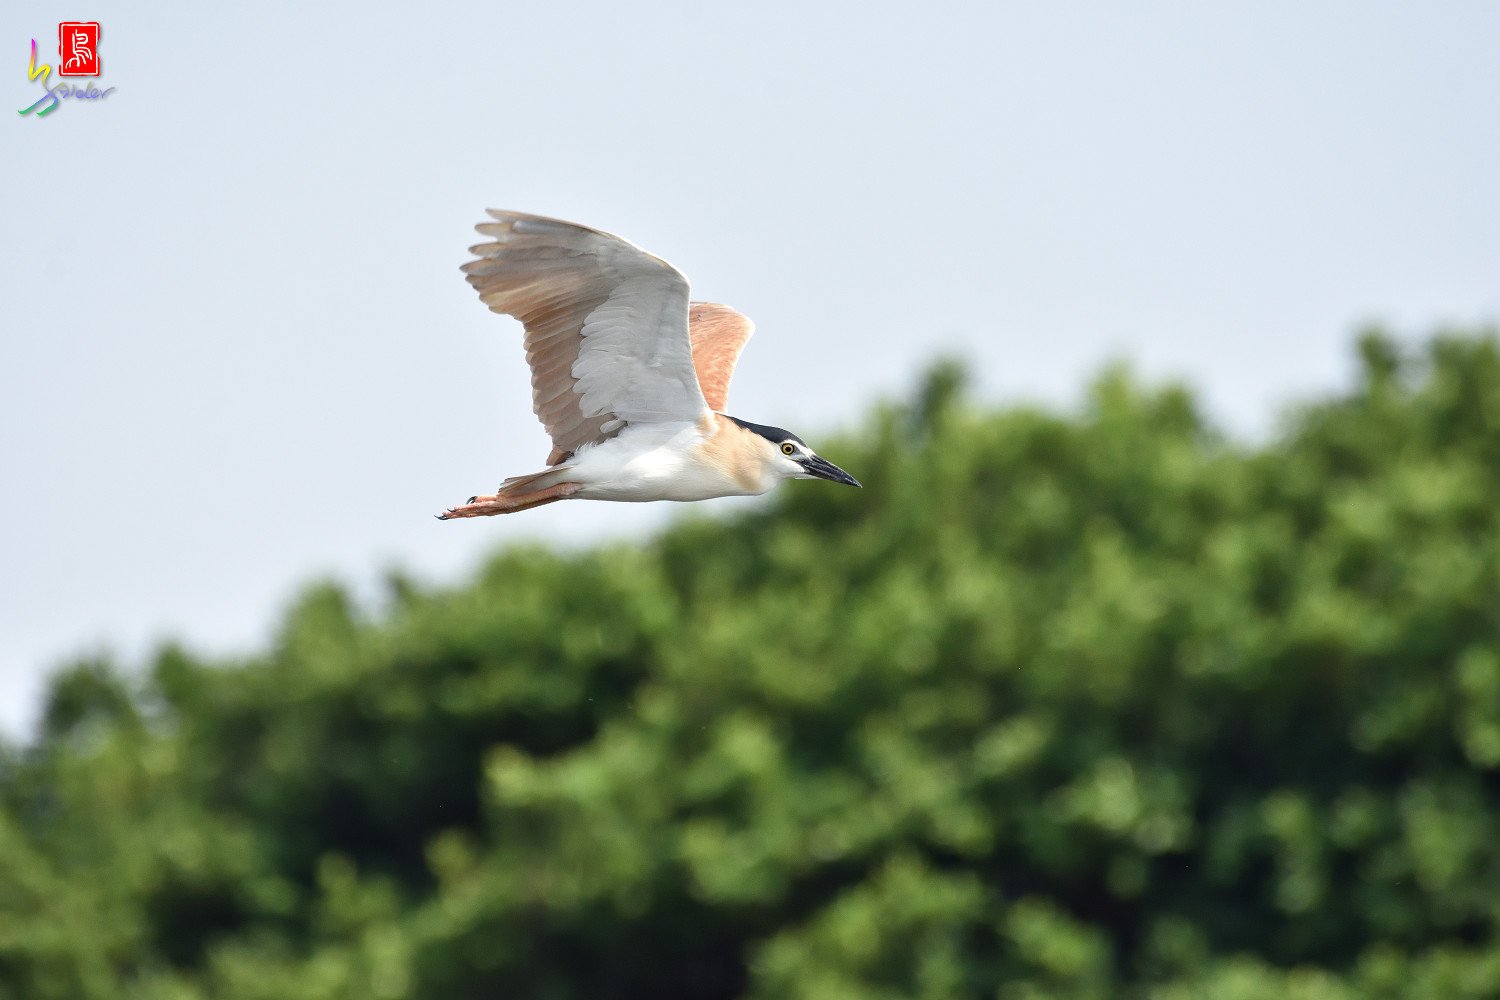 Rufous_Night_Heron_7169